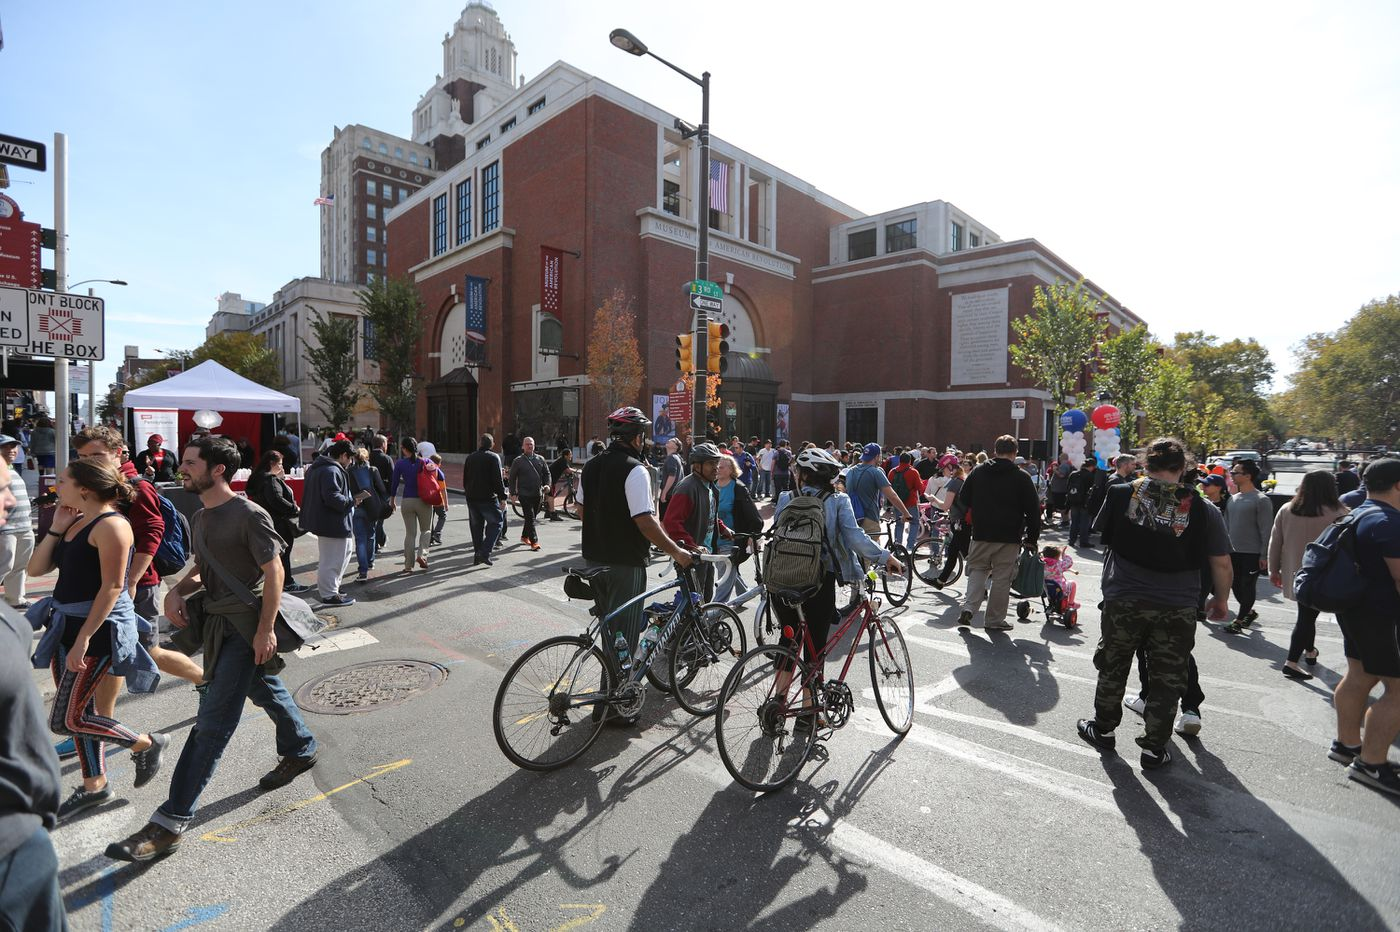 Philly Free Streets is so joyful. What if it happened every single week? | Opinion